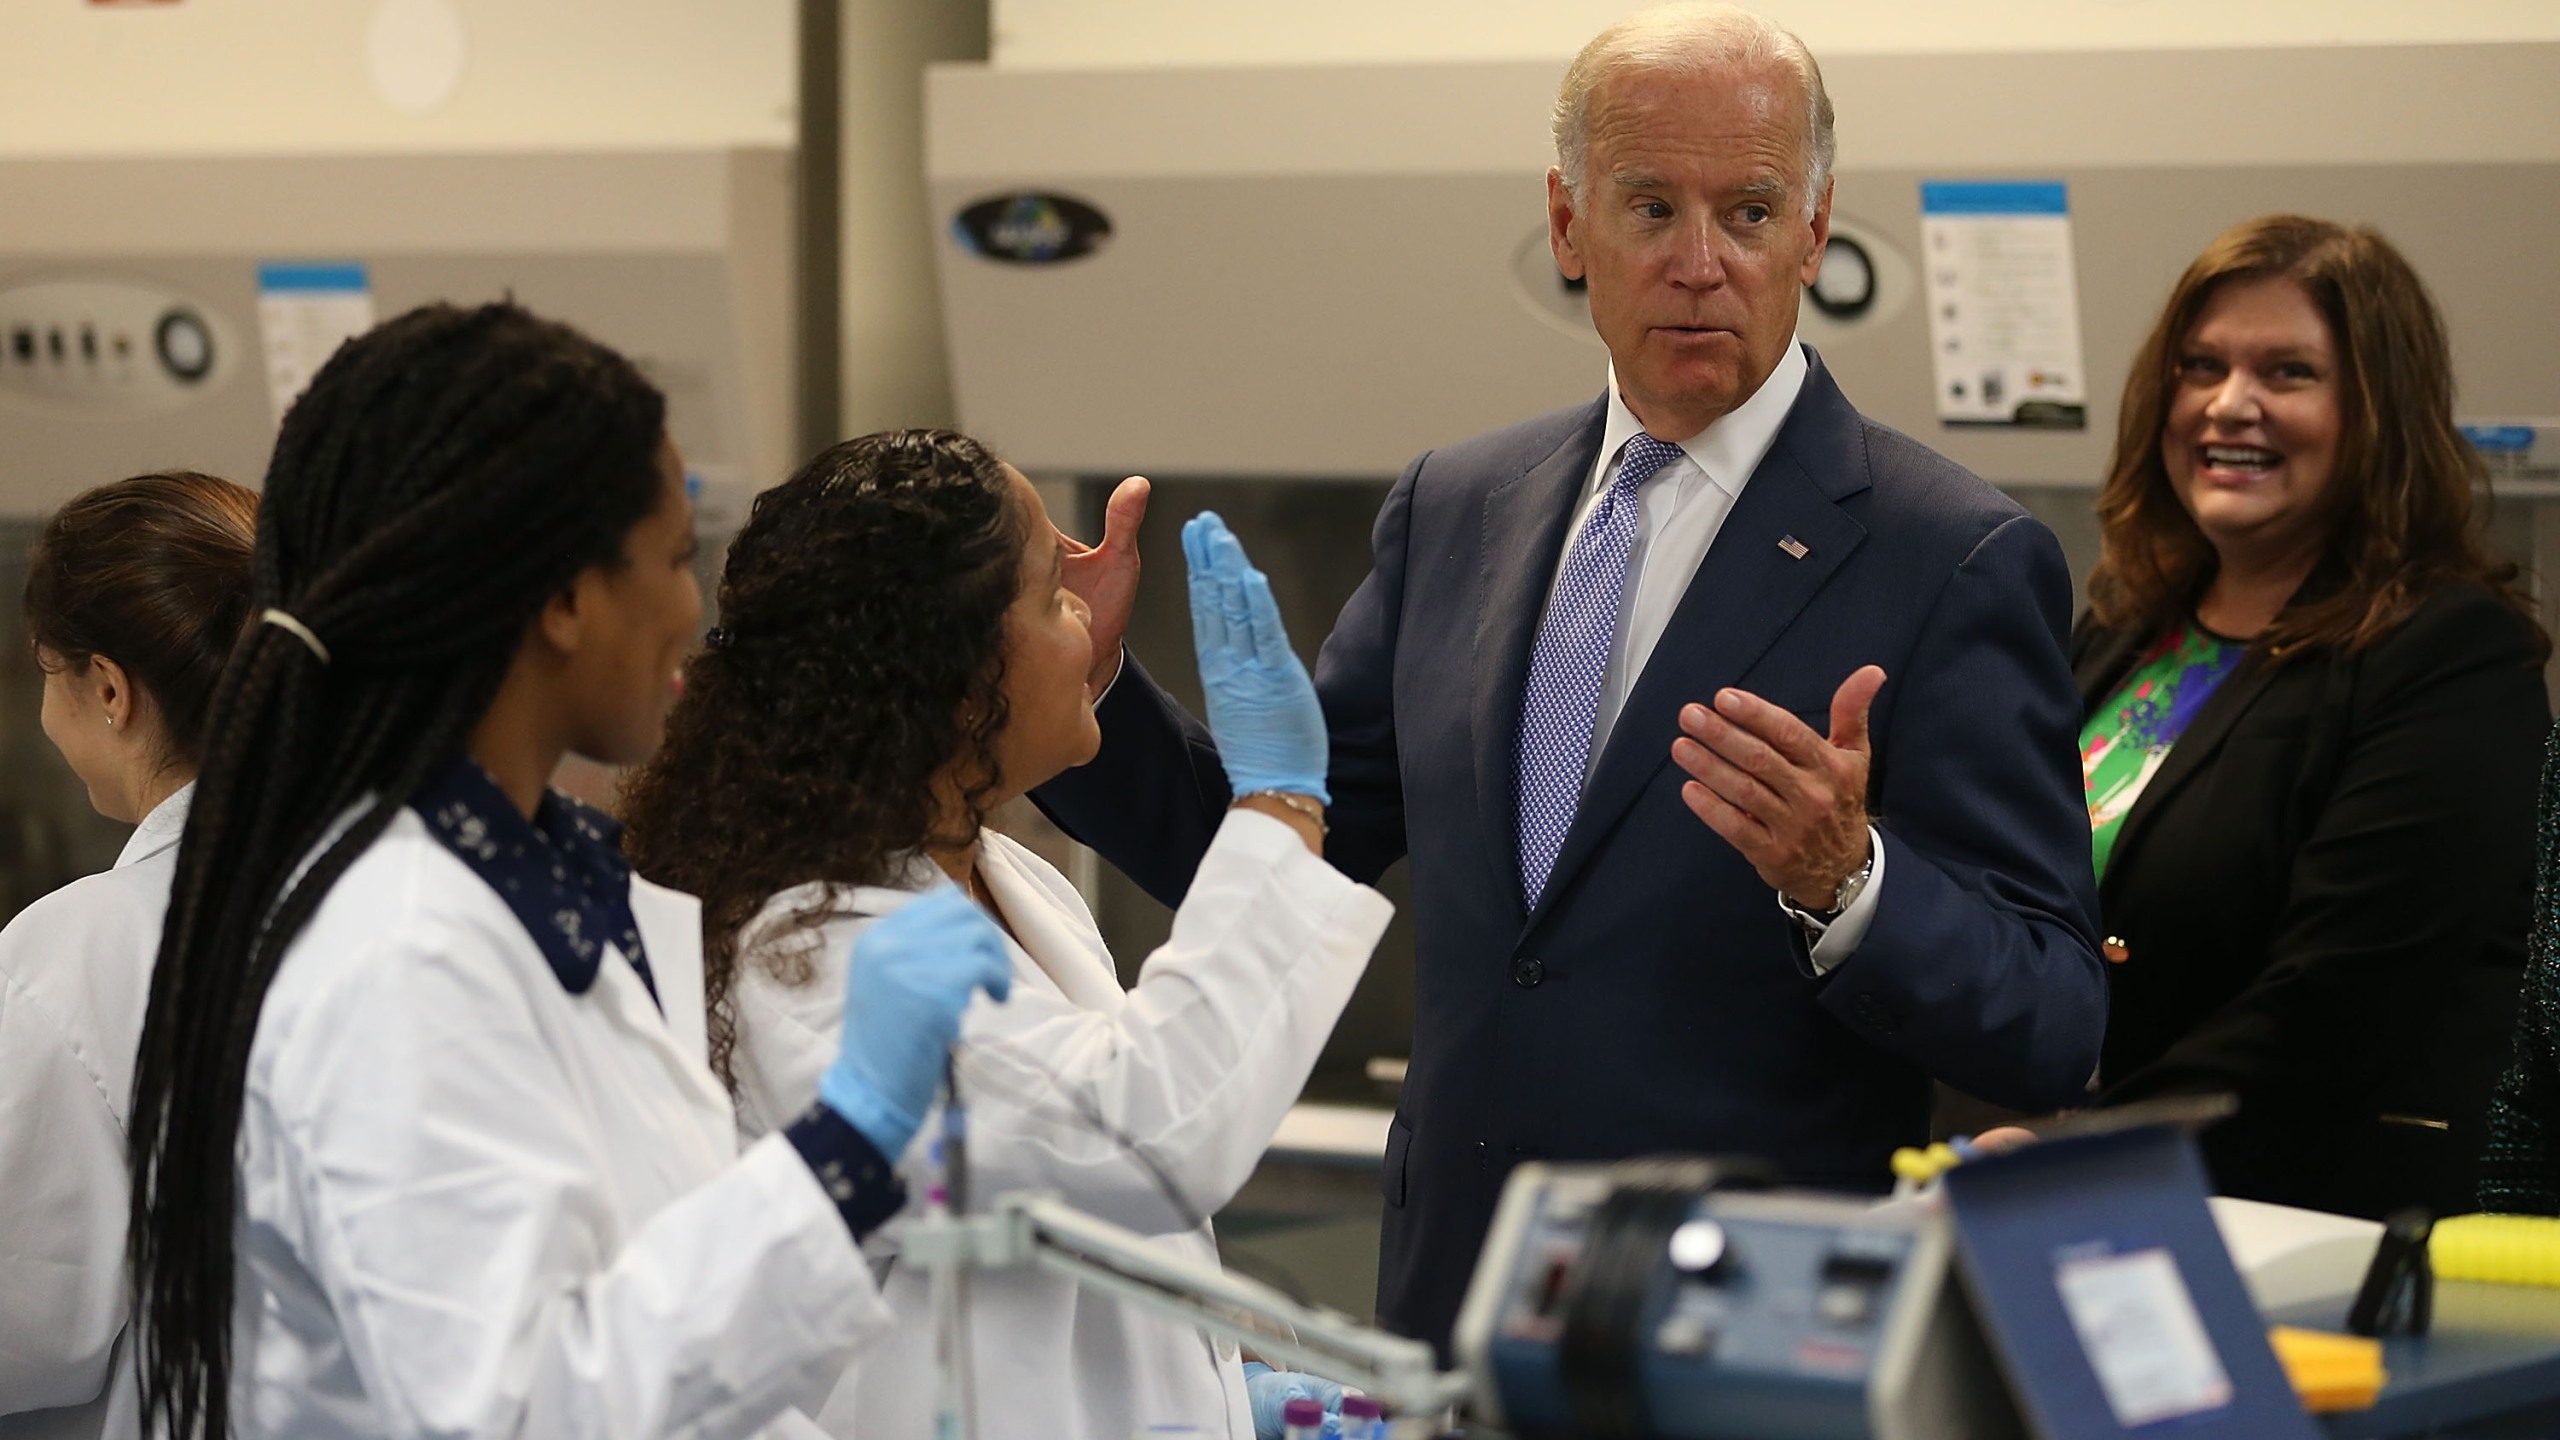 U.S. Vice President Joe Biden vistis a Bio Tech class before making remarks at the Miami Dade College on the importance of helping more Americans go to college September 2, 2015 in Miami, Florida. (Joe Raedle/Getty Images)